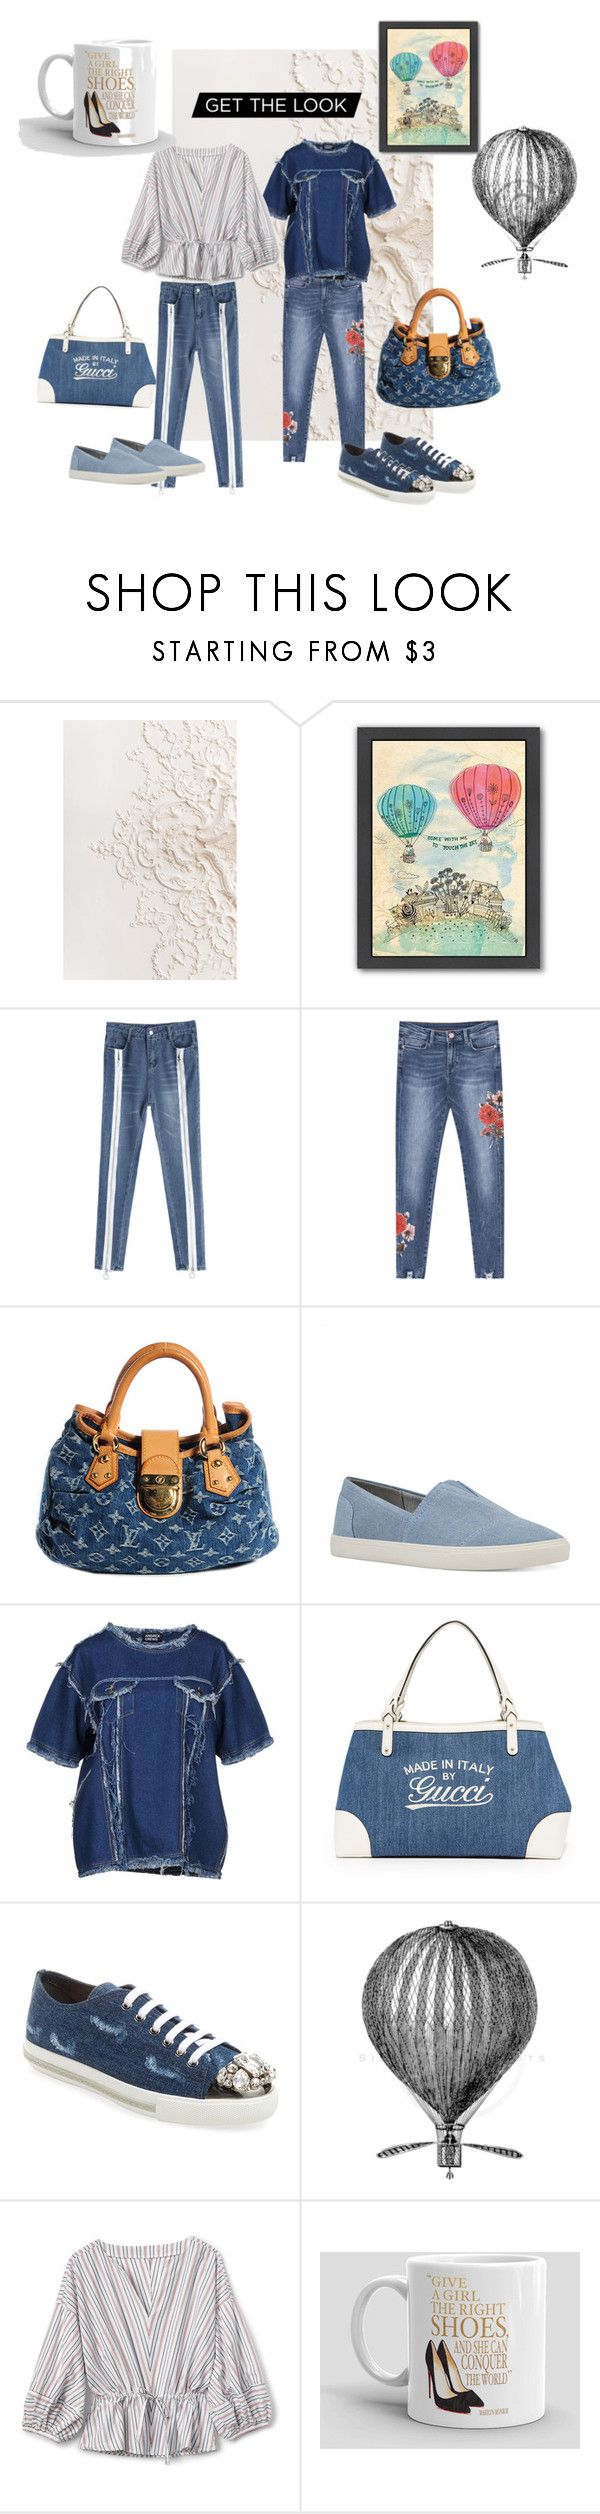 """Denim style"" by marianaleonluzardo ❤ liked on Polyvore featuring Americanflat, Louis Vuitton, Nine West, Andrea Crews and Miu Miu"